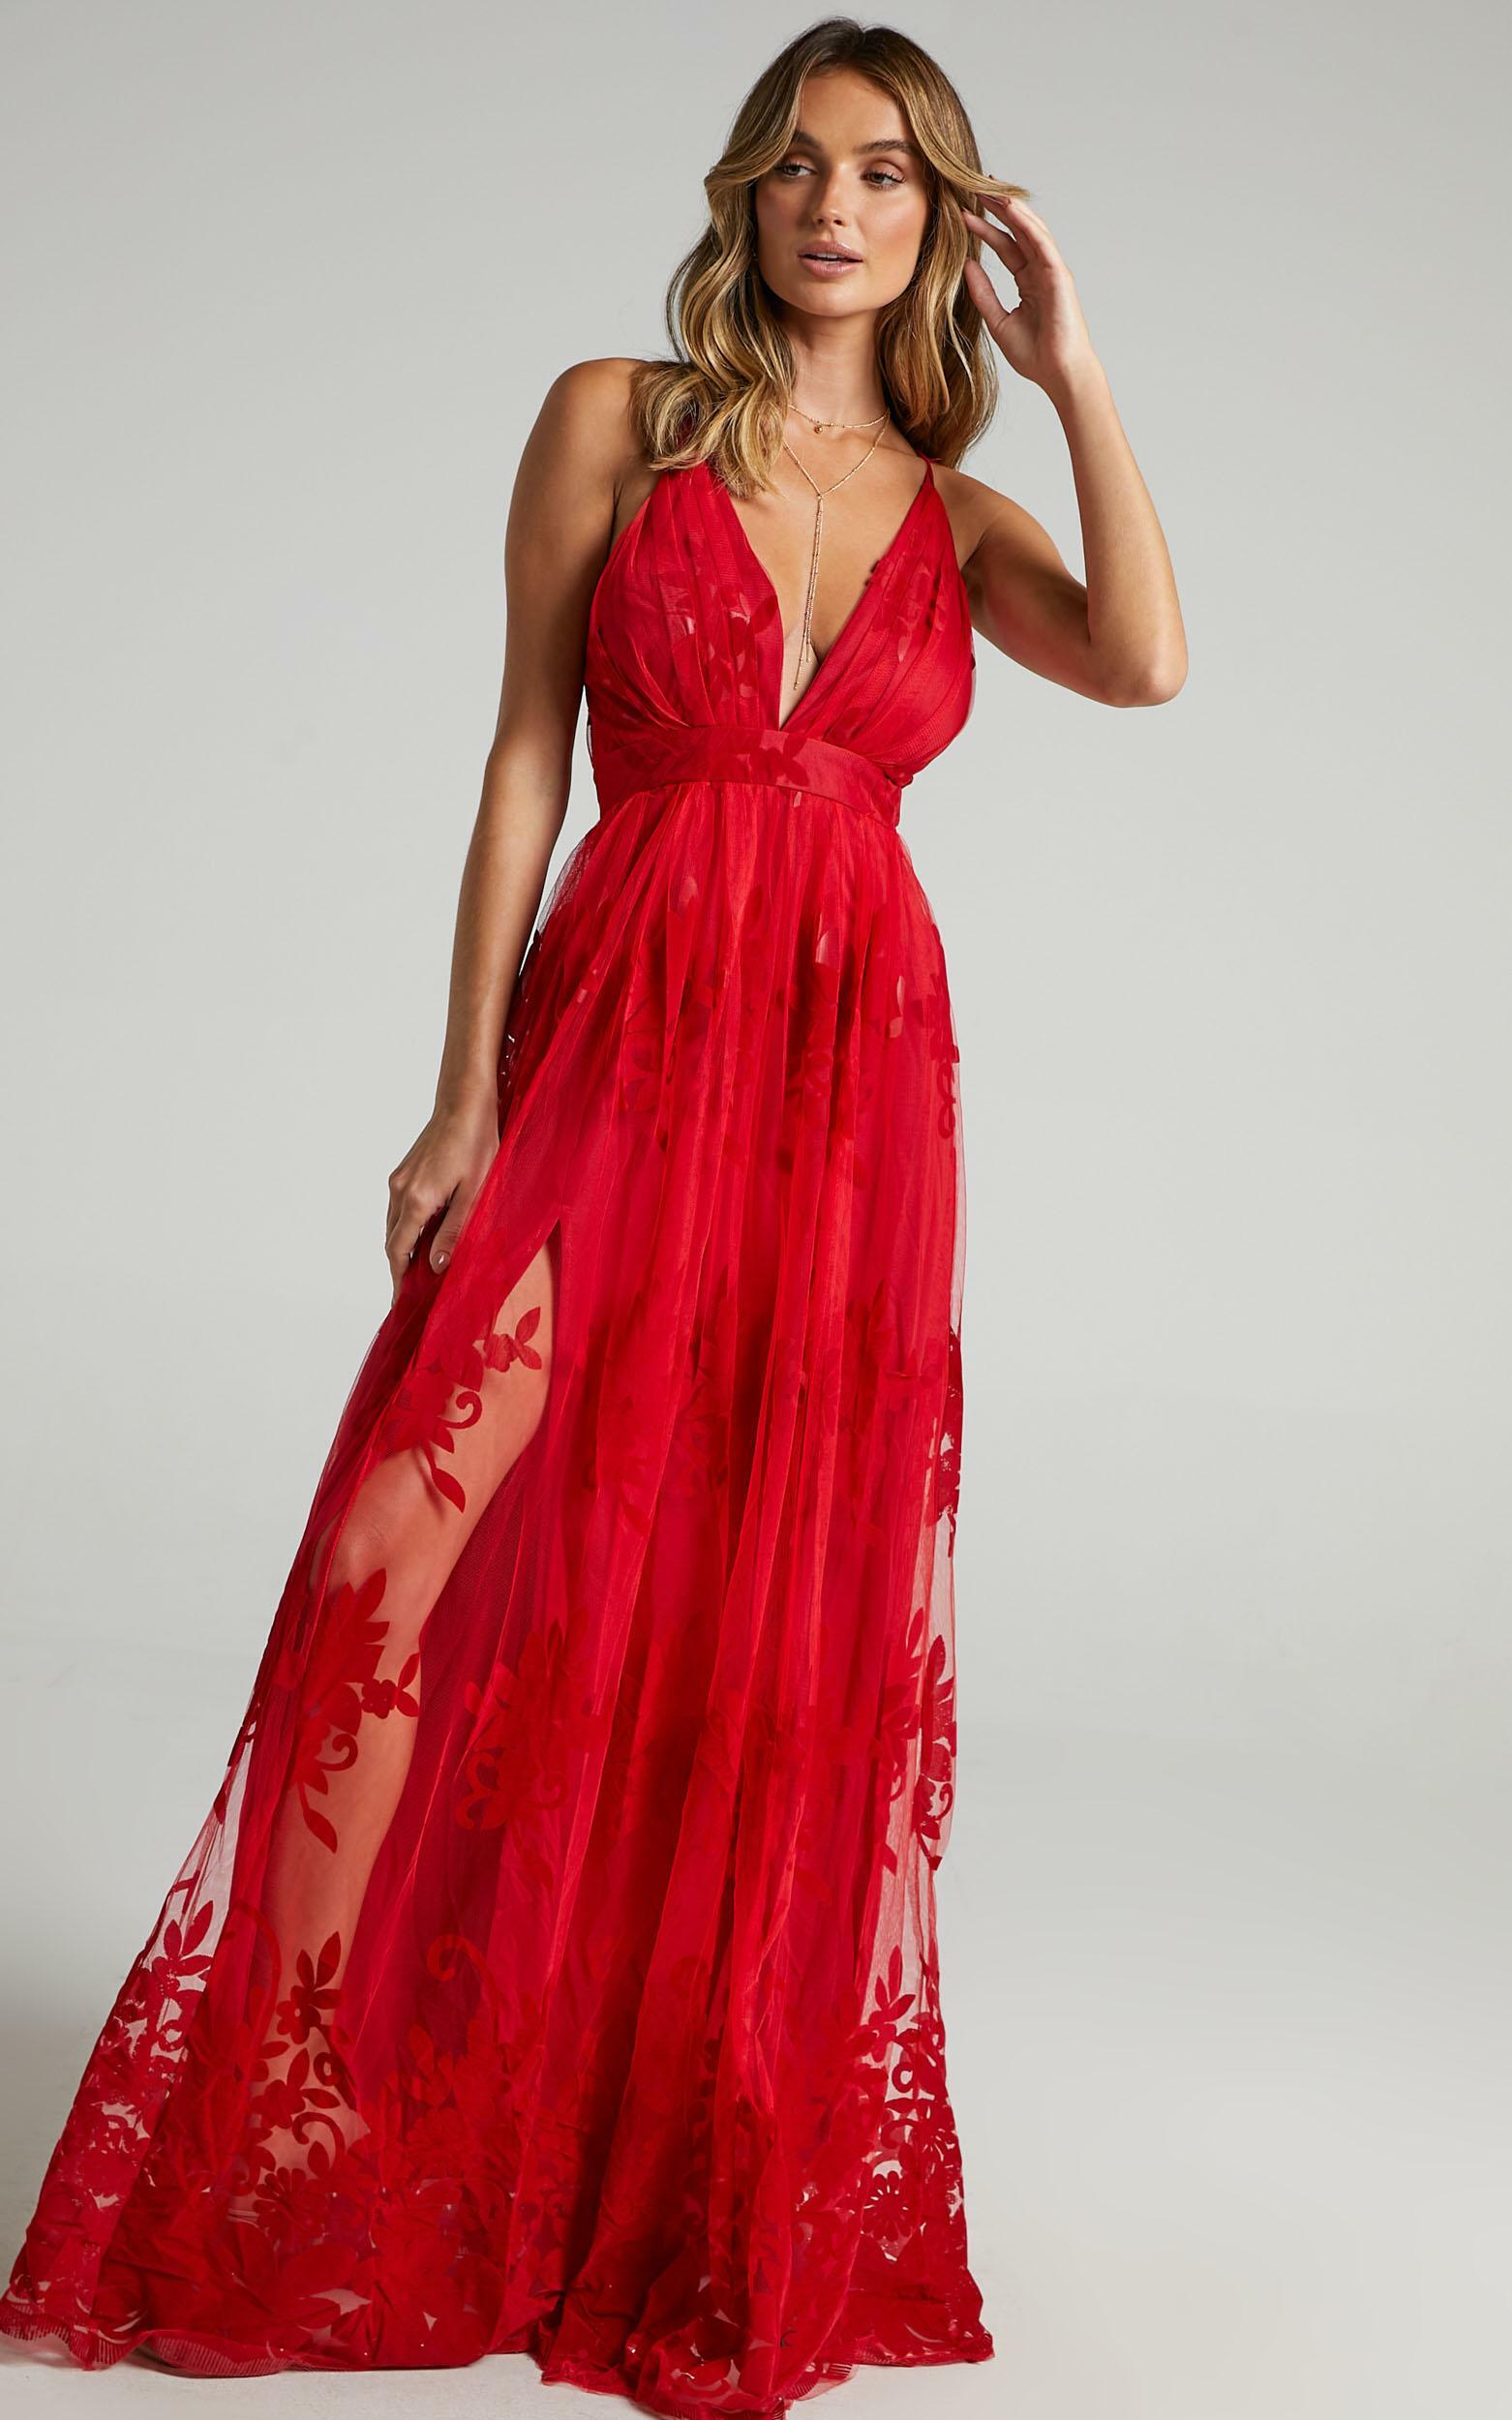 Promenade Maxi Dress in Red - 08, RED6, hi-res image number null